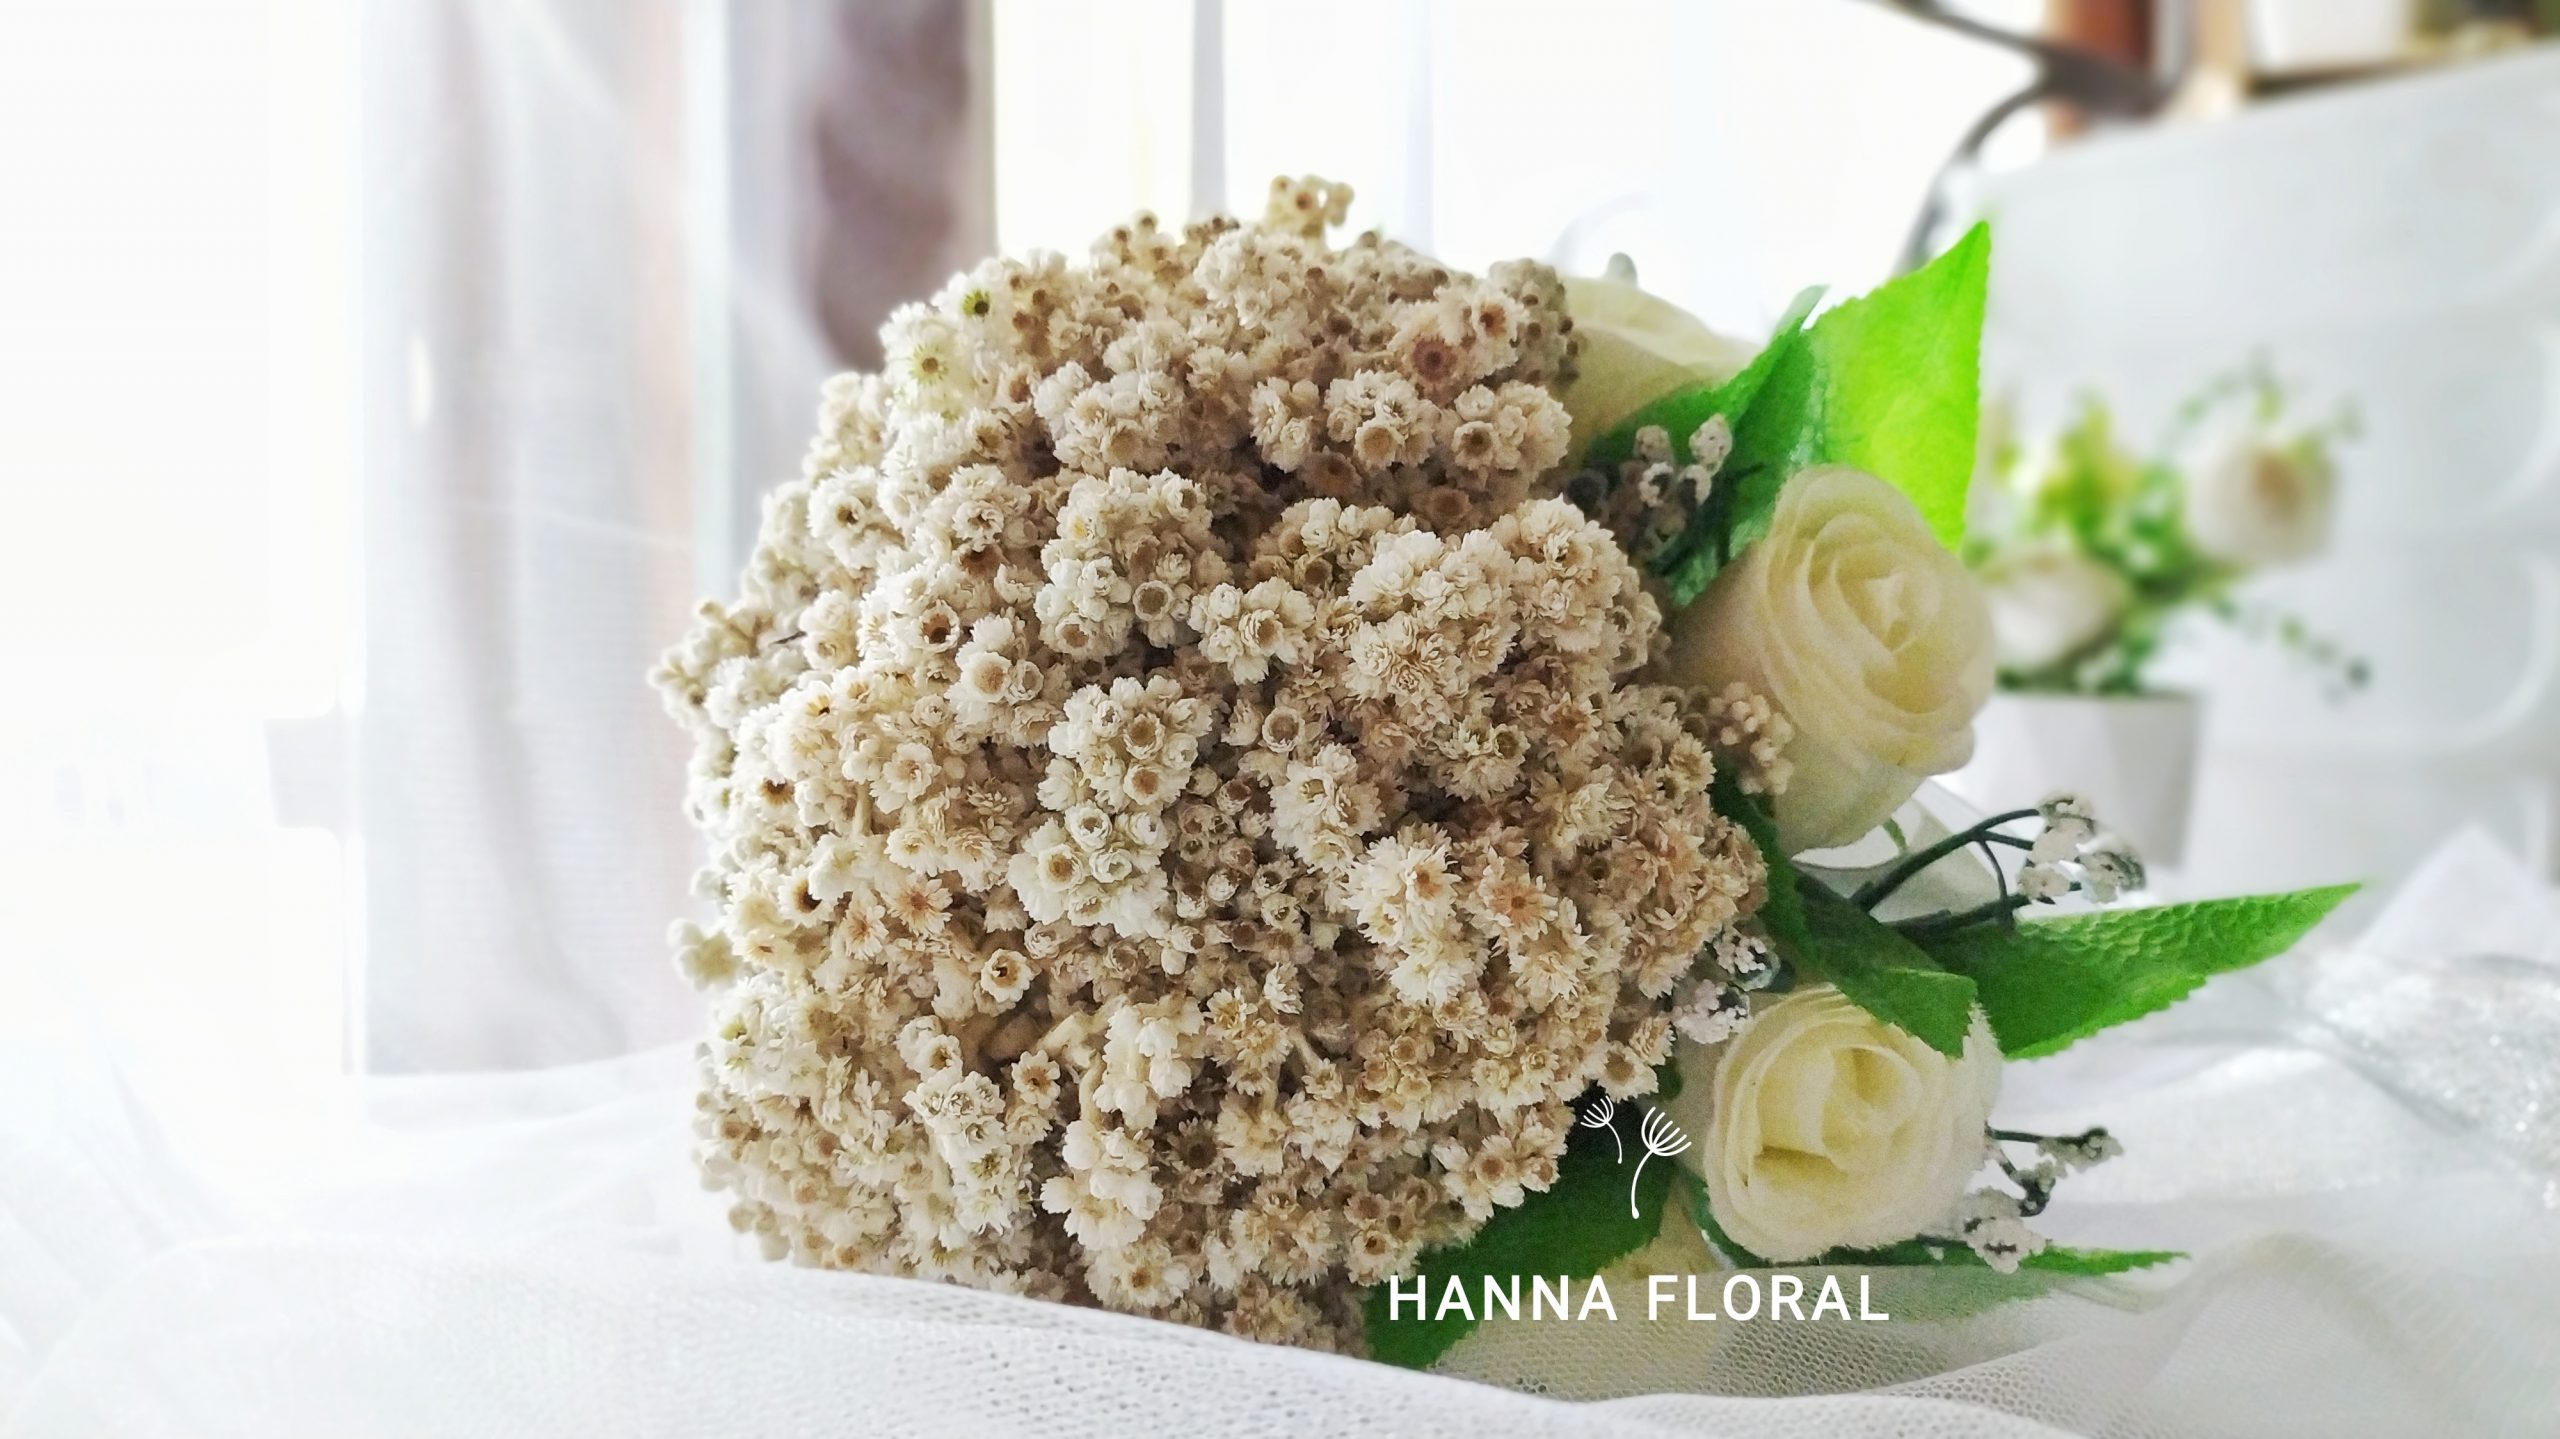 A Short Story about Hanna Floral